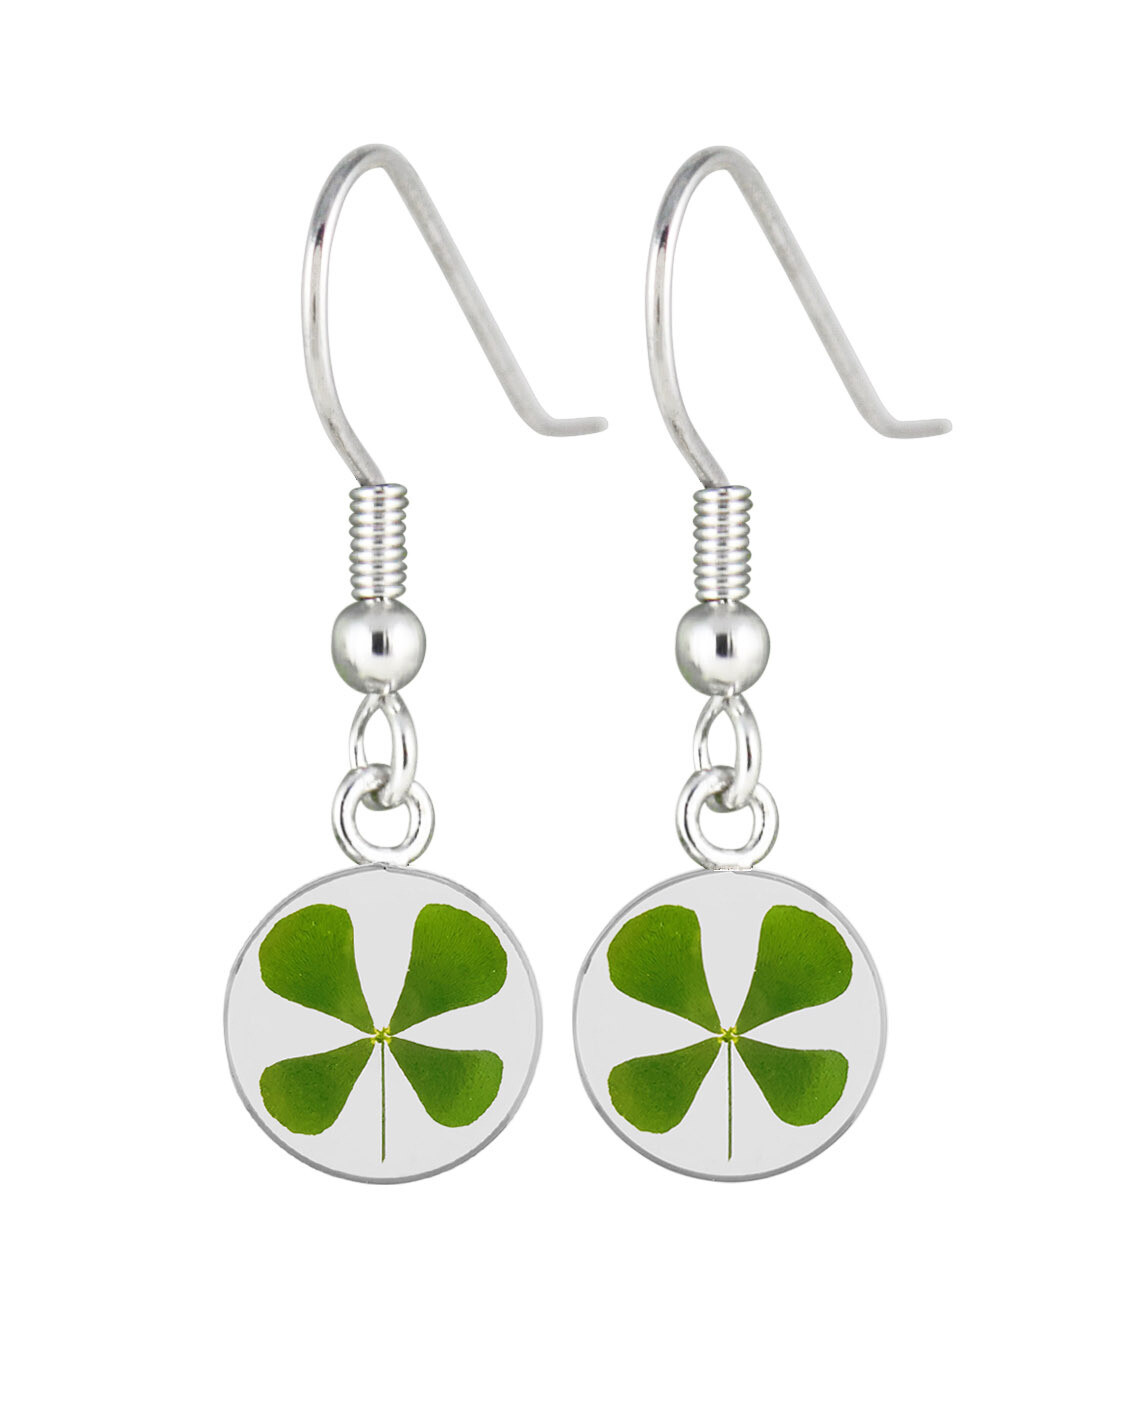 Clover Earrings, Small Circle, Transparent.